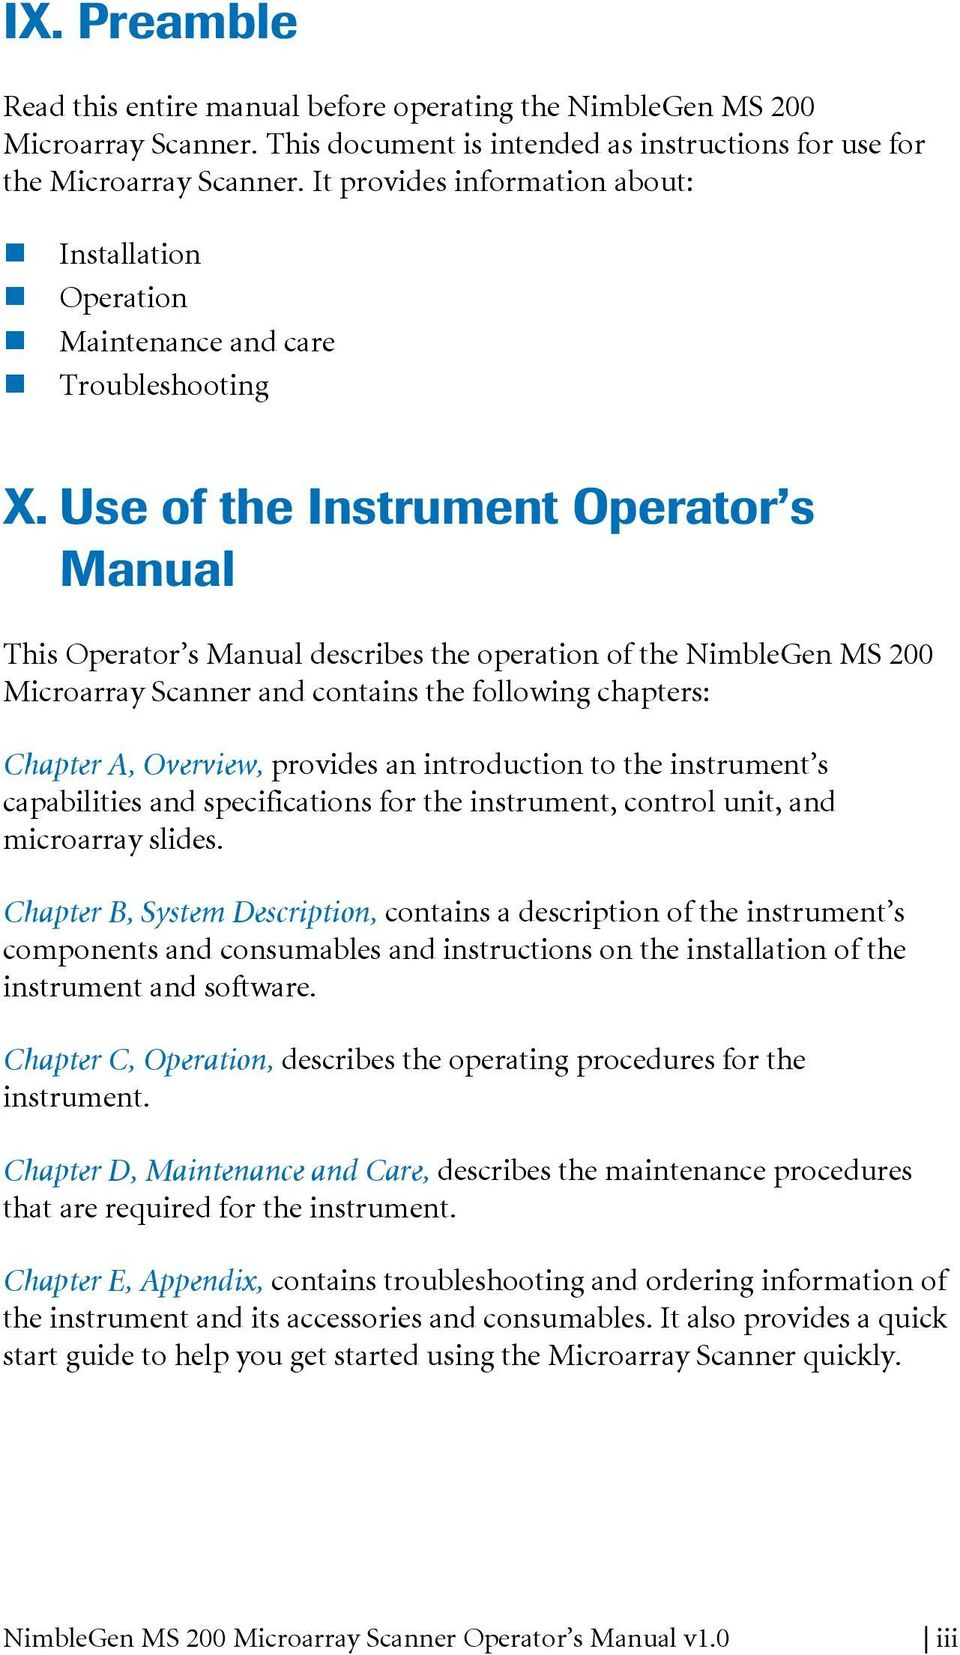 Use of the Instrument Operator s Manual This Operator s Manual describes the operation of the NimbleGen MS 200 Microarray Scanner and contains the following chapters: Chapter A, Overview, provides an